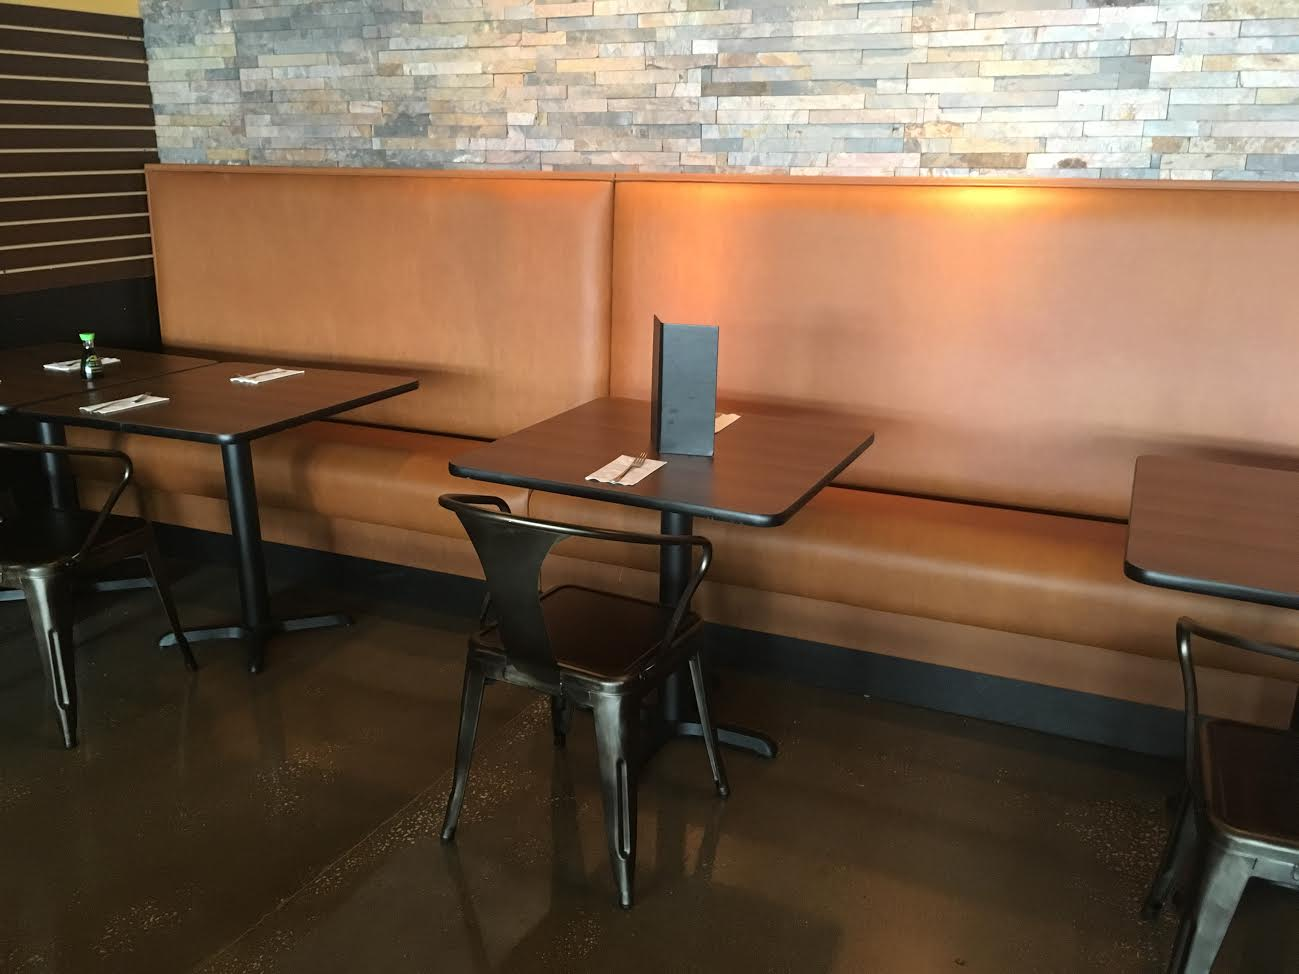 Banquette Restaurant Booths Restaurant Wall Benches